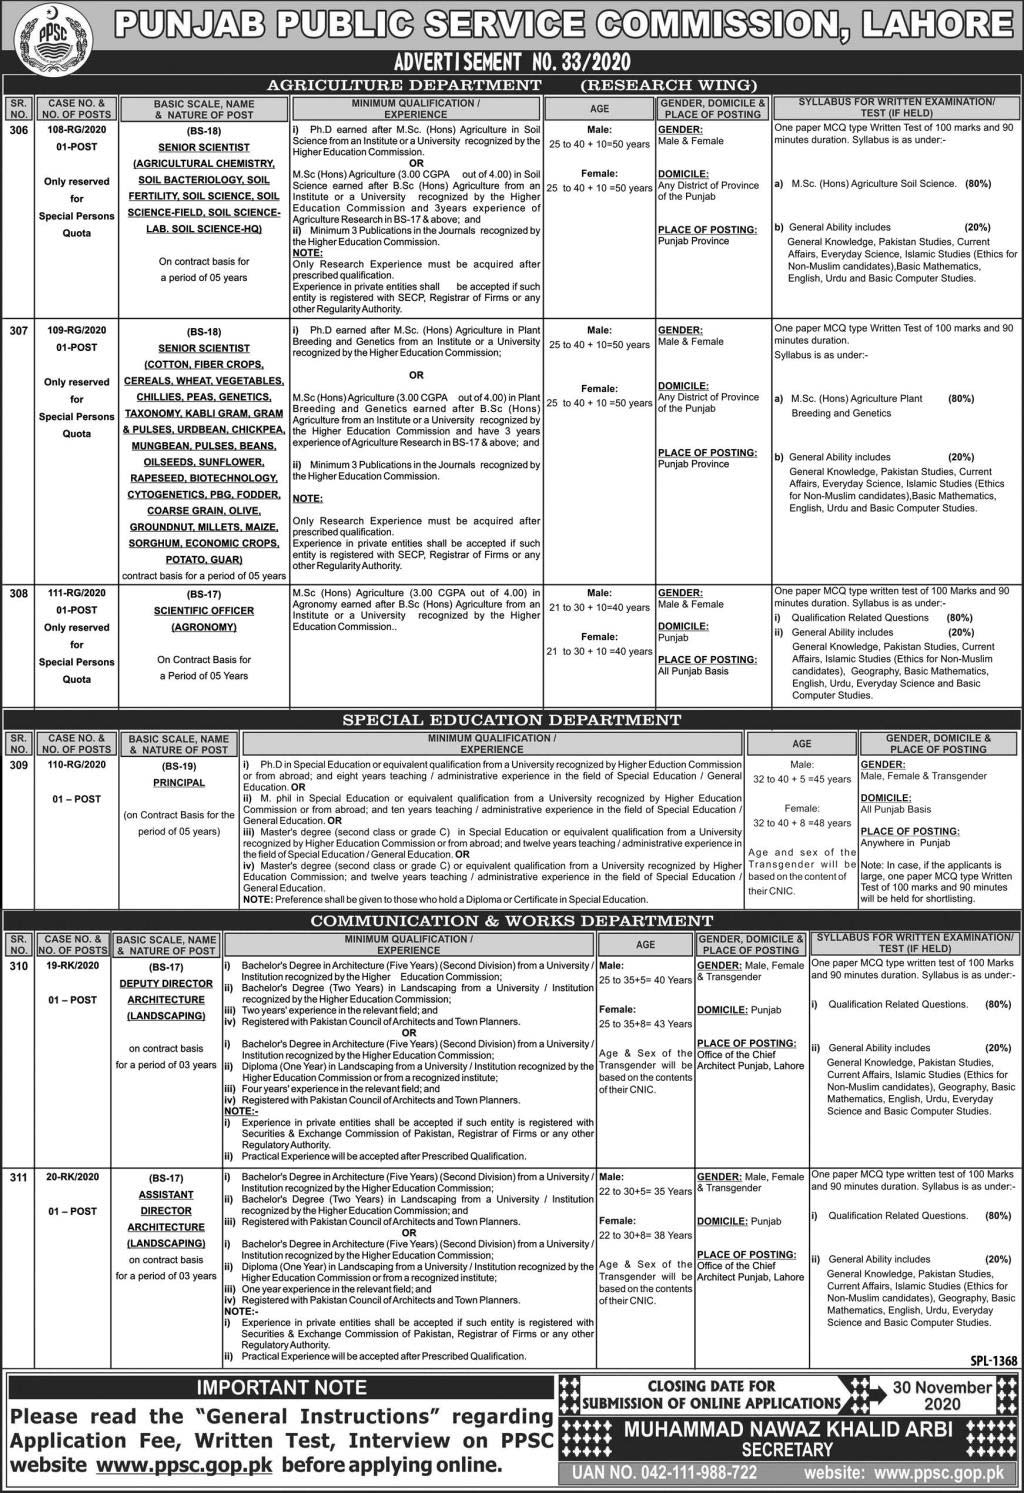 PPSC Jobs Advertisement No. 33/2020